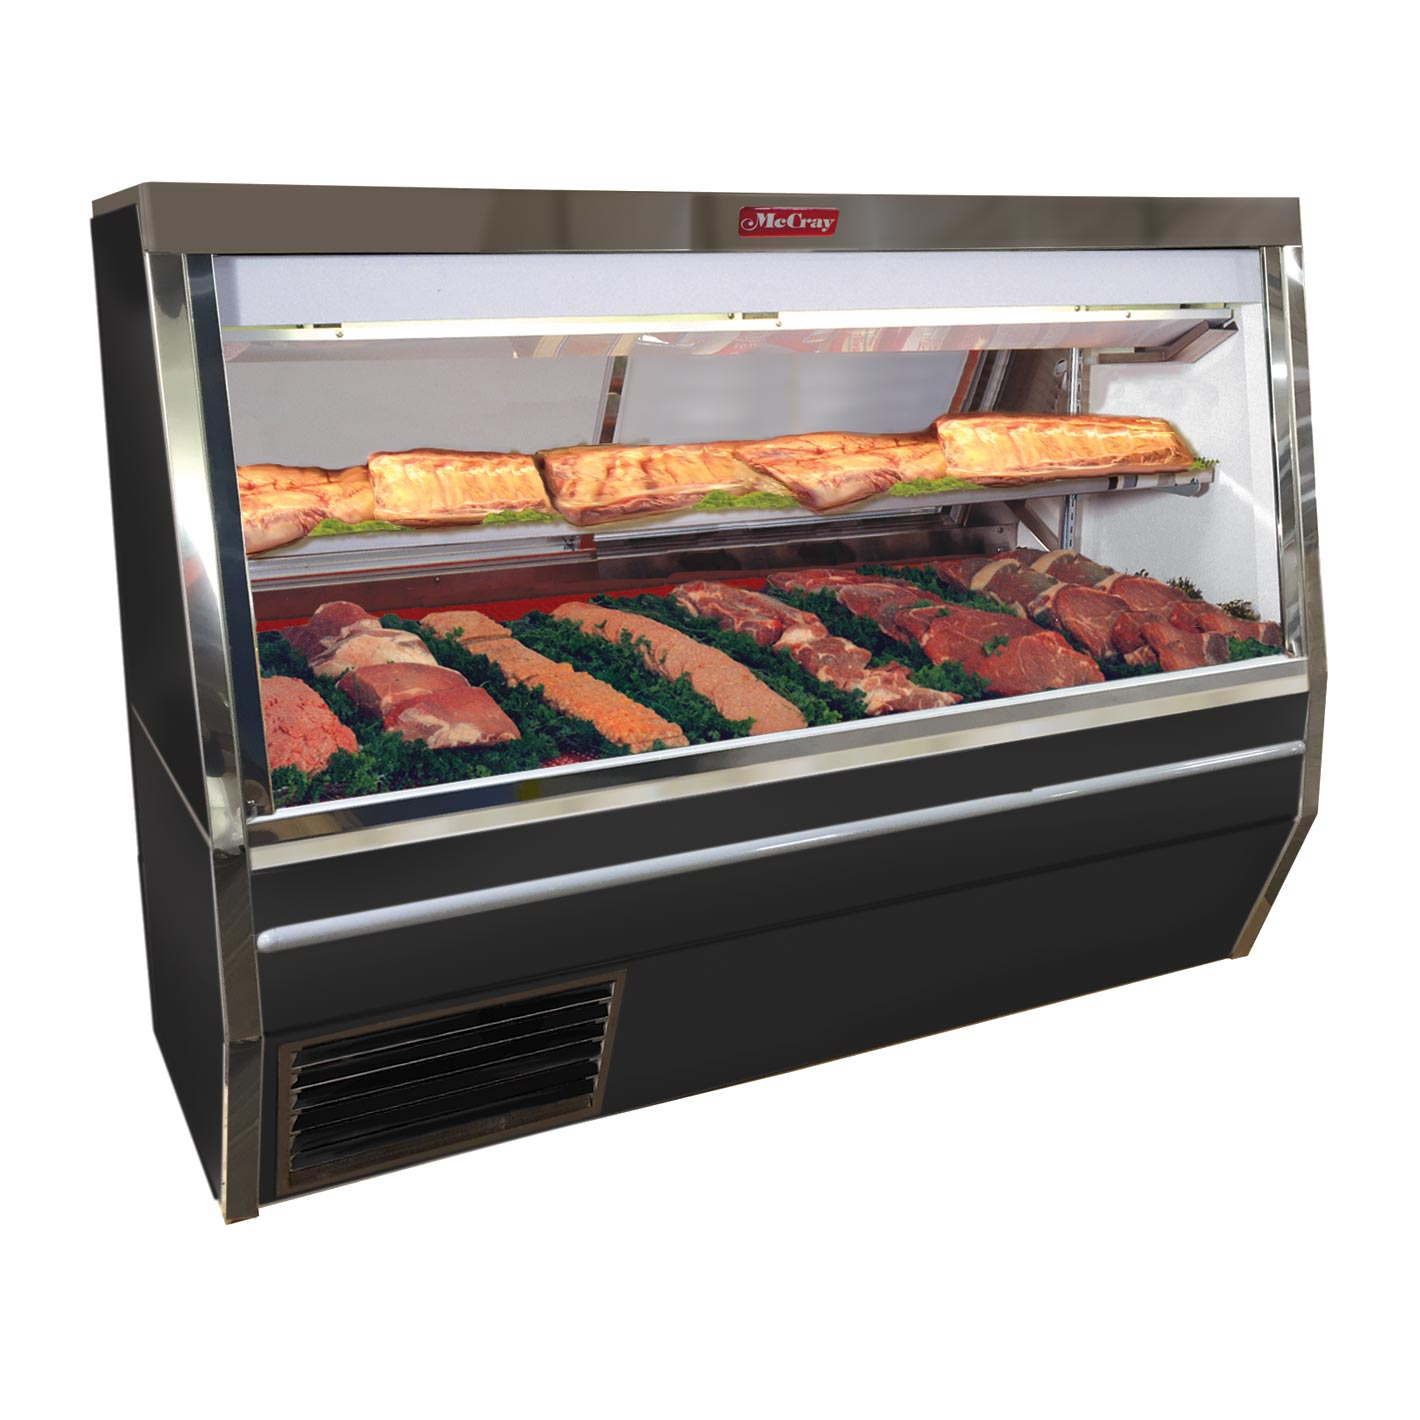 Howard-McCray SC-CMS34N-4-BE-LED display case, red meat deli